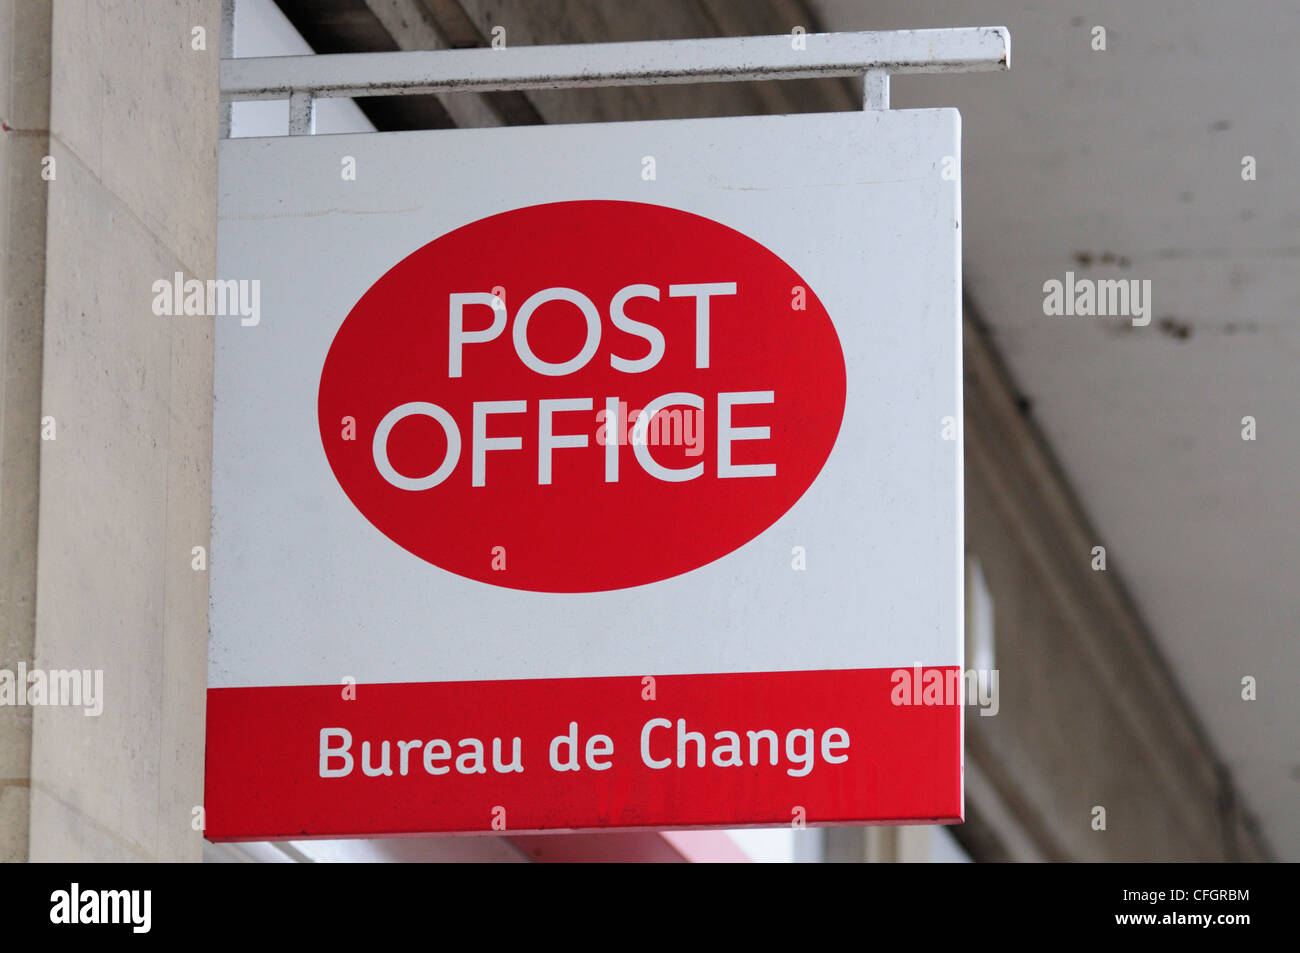 Post Office Bureau de Change Sign, Cambridge, England, Uk - Stock Image